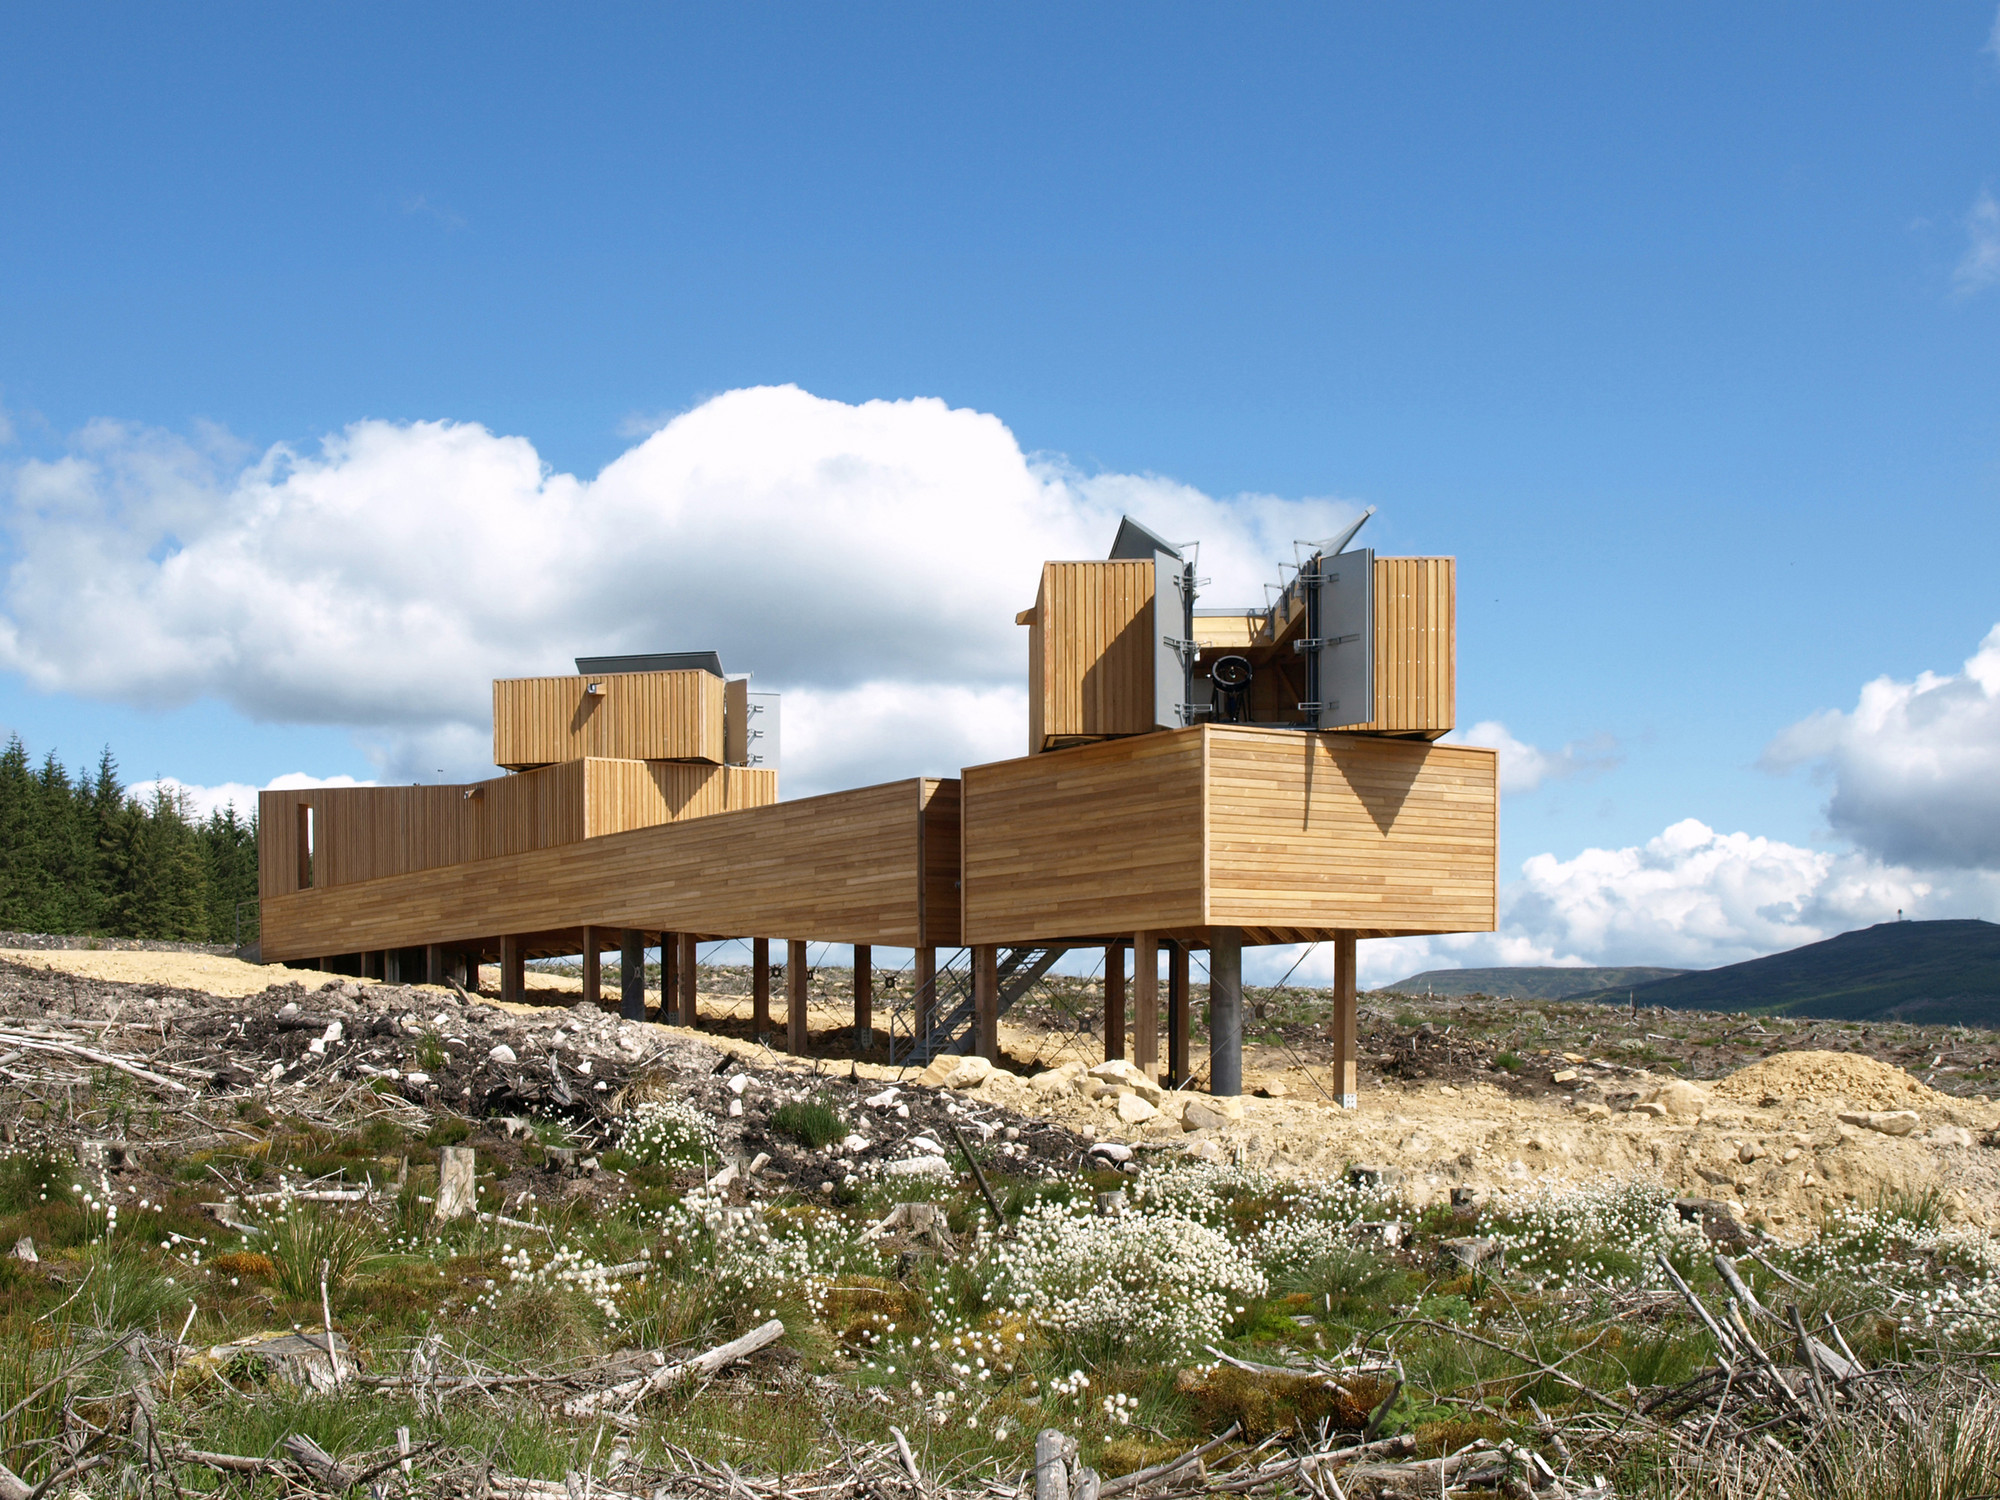 Kielder Observatory / Charles Barclay Architects, Courtesy of Charles Barclay Architects